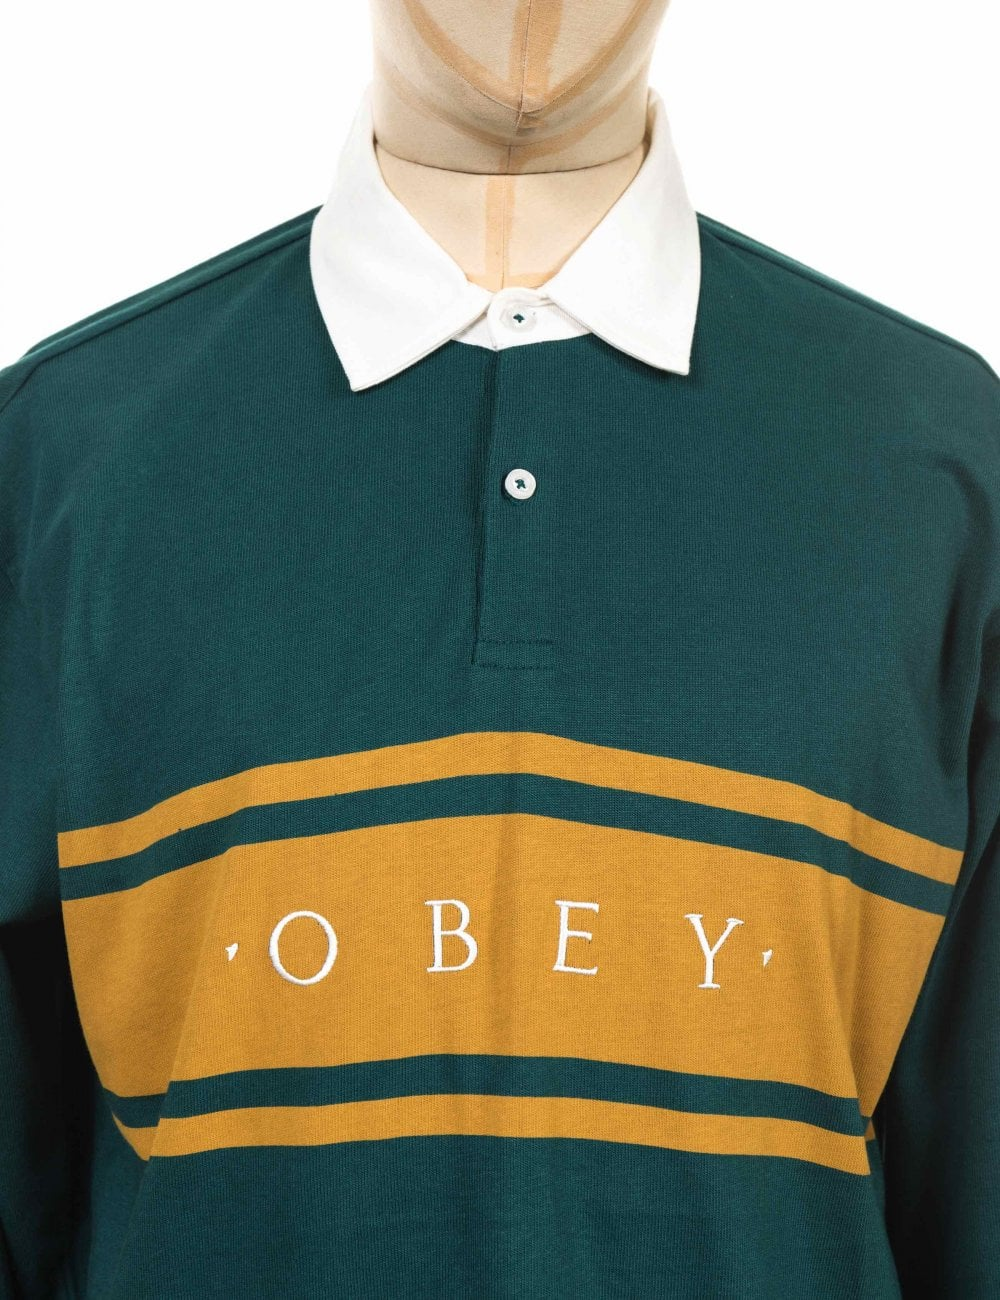 df6b5ce5 Obey Clothing L/S Hero Classic Polo Shirt - Dark Teal - Clothing ...